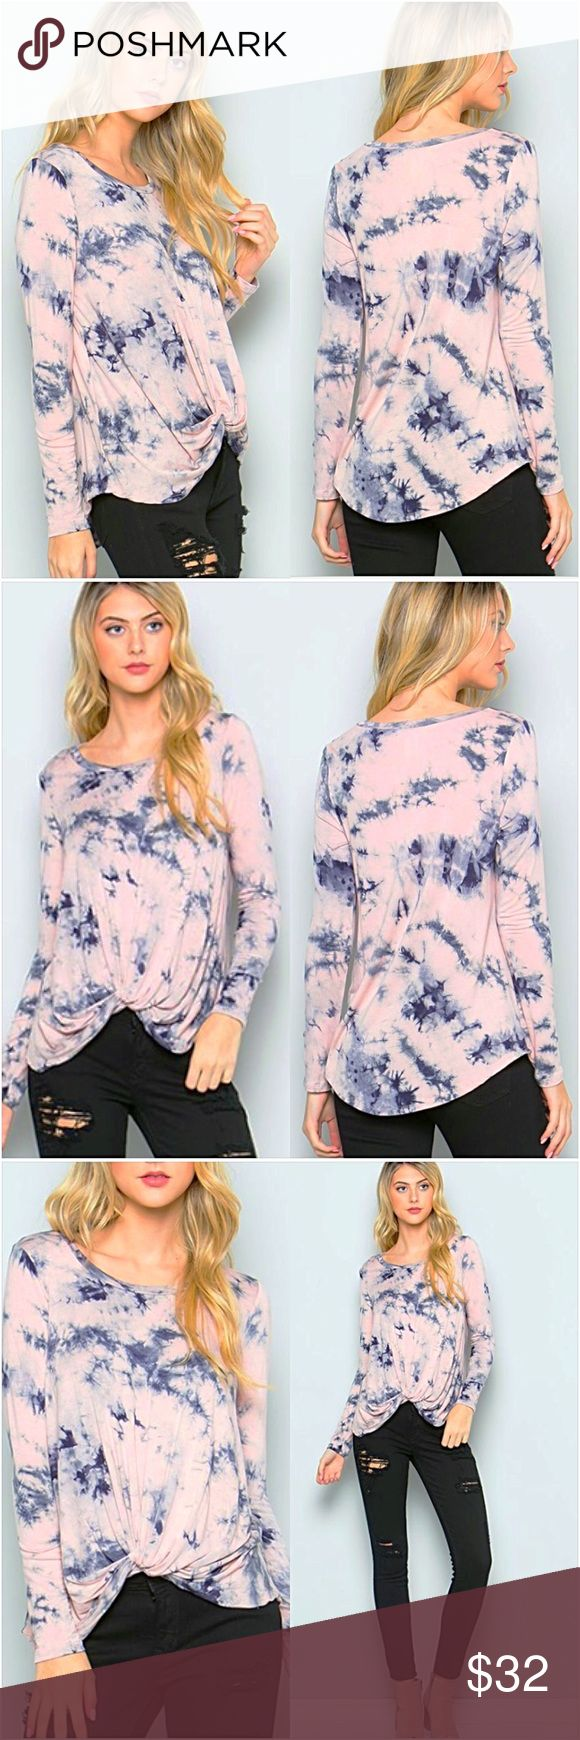 """Blush Blue Knotted Tie Dye Tunic Top SML Beautiful blush & blue tie dye knit front tunic top. Lightweight stretchy 95% rayon - 5% spandex - Made in USA  Small Bust 32-34-36 Front Length 17"""" Back Length 27""""  Medium Bust 36-38 Front Length 17.5"""" Back Length 27.5""""  Large Bust 40-42 Front Length 18"""" Back Length 28"""" Tops"""